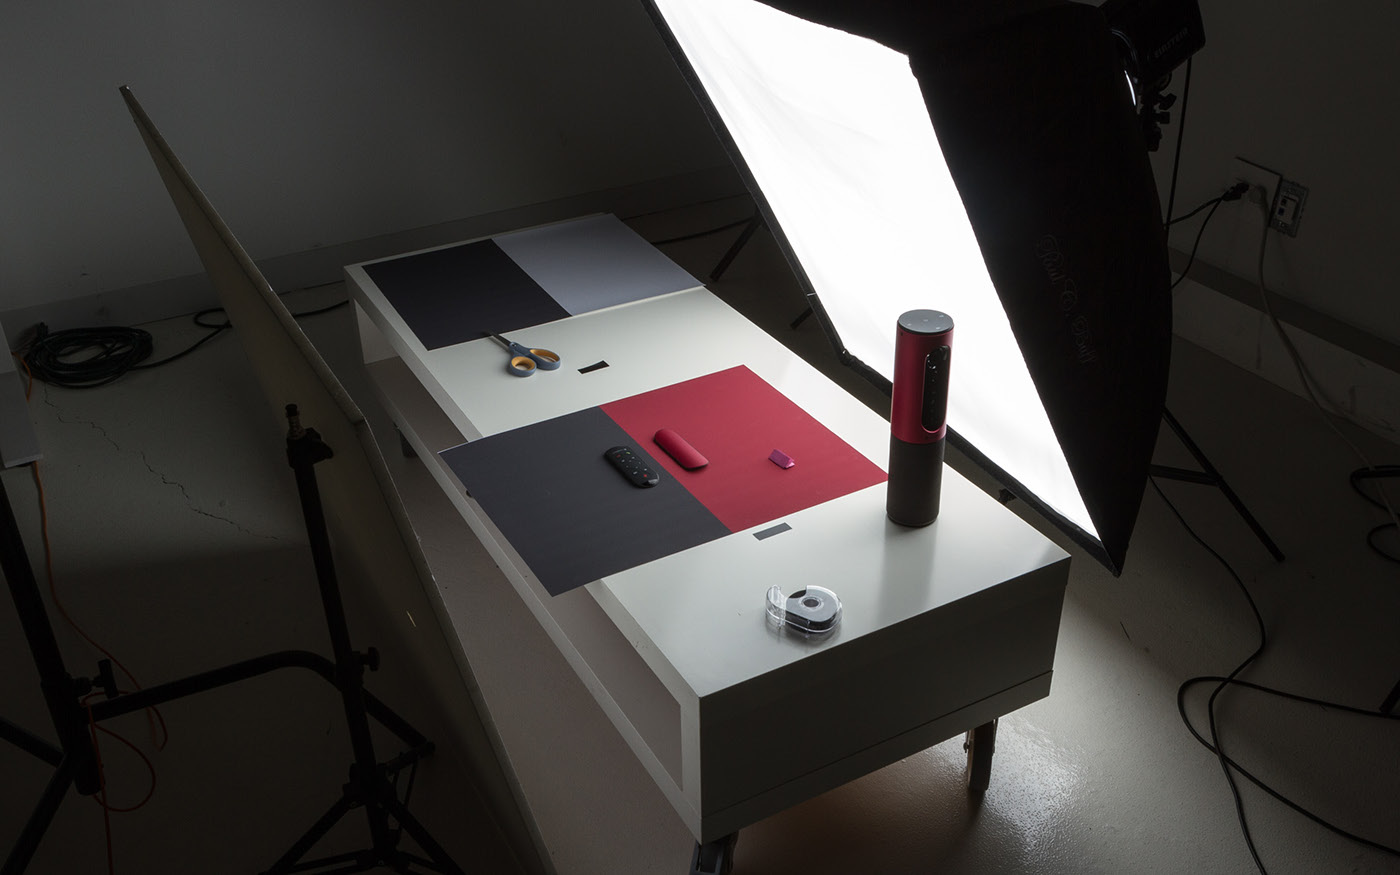 Logitech webcam camera conference Tone-on-tone shadow mnml Product Photography